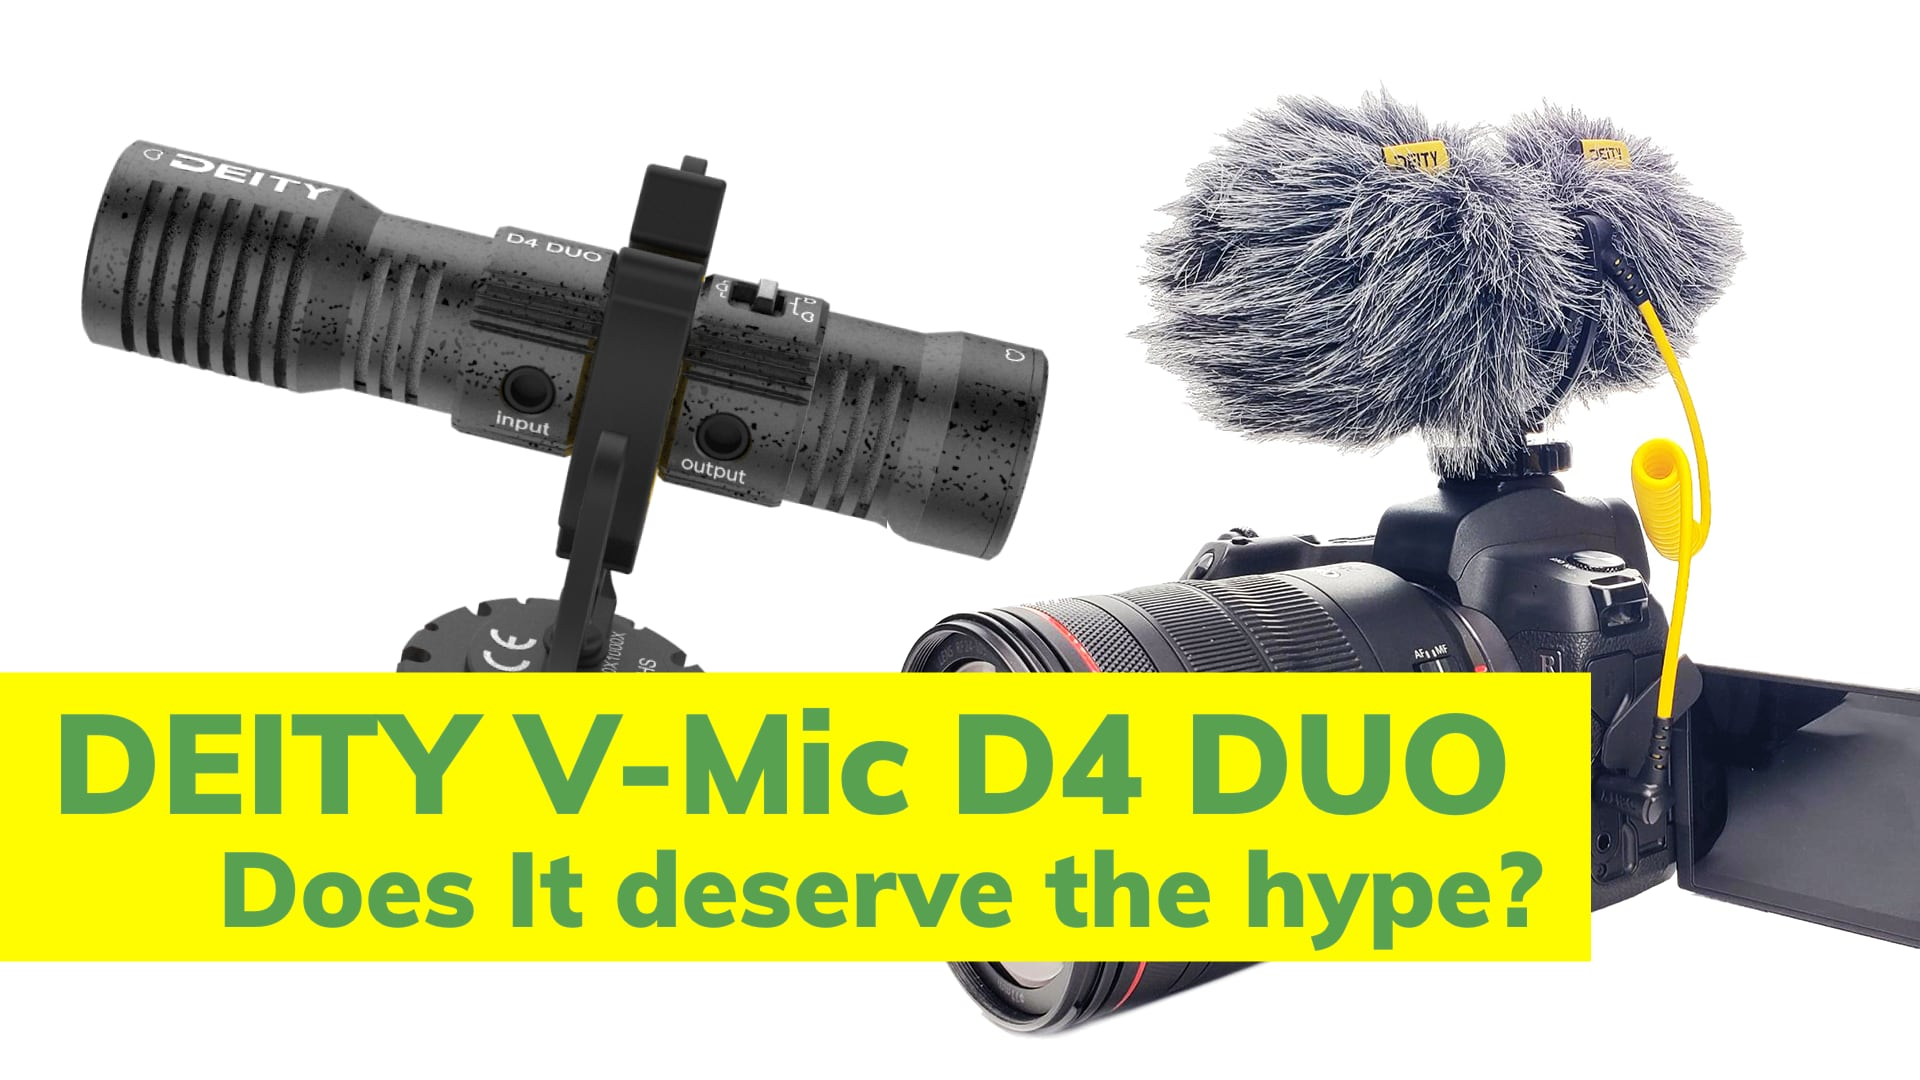 First Look at the Deity V-Mic D4 Duo